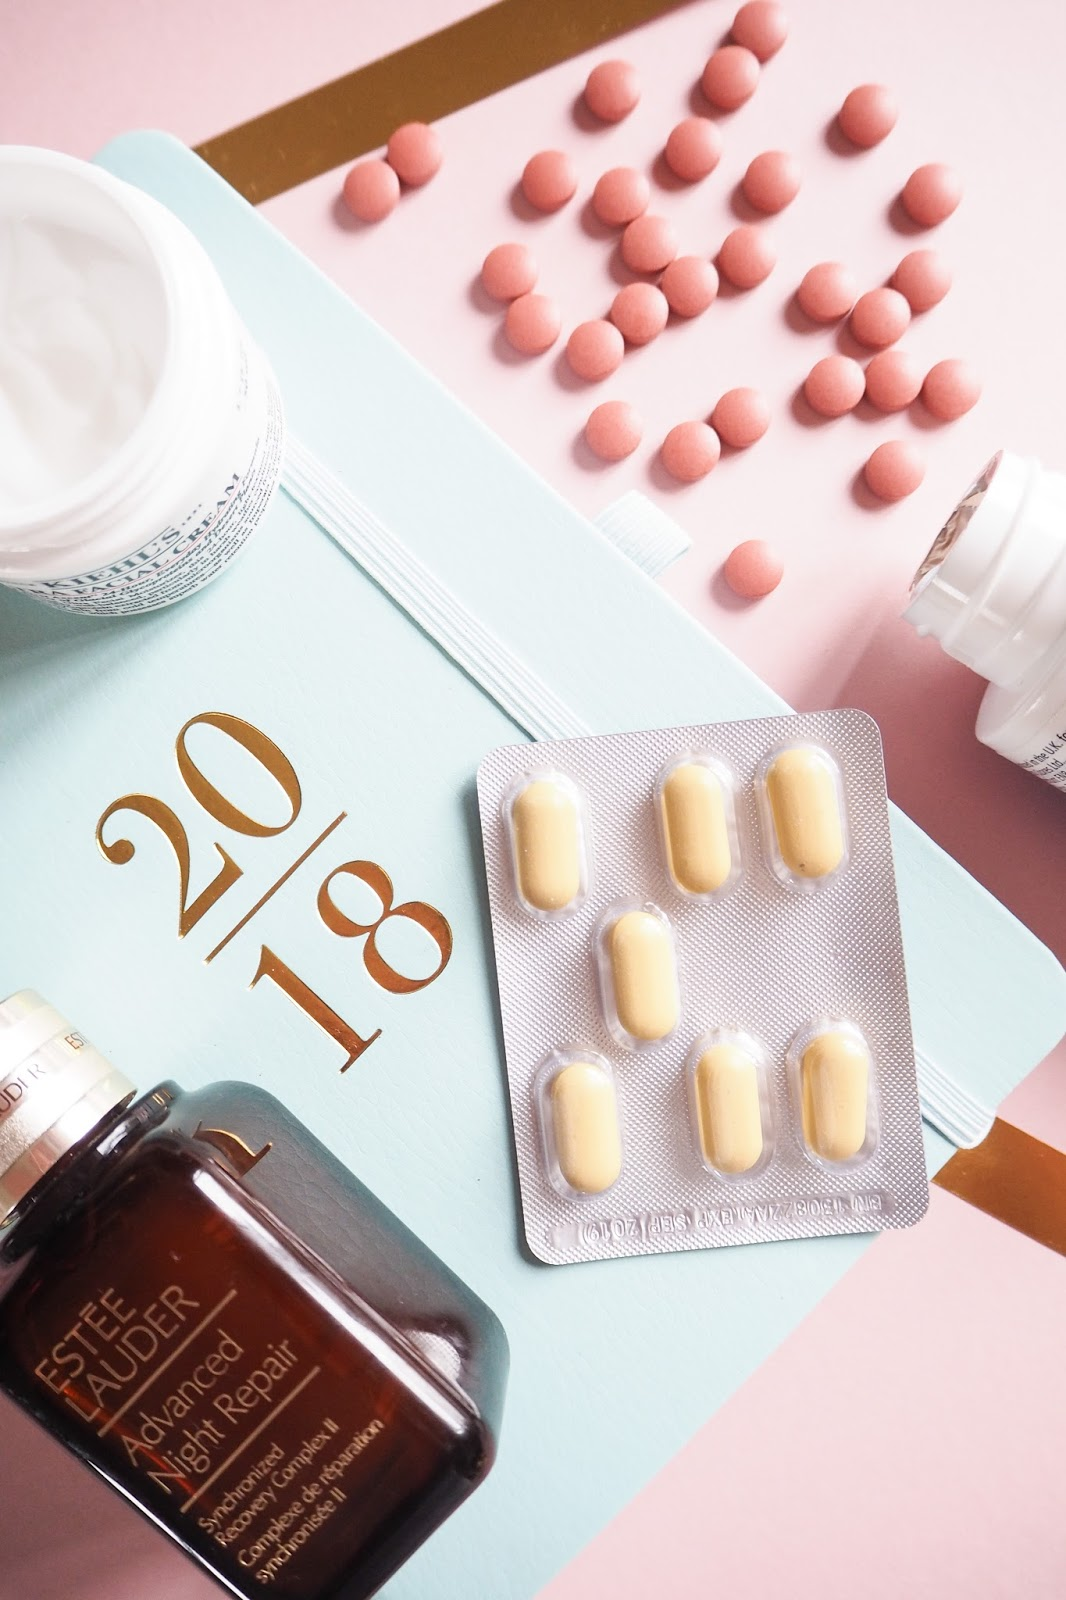 Skincare tips for 2018